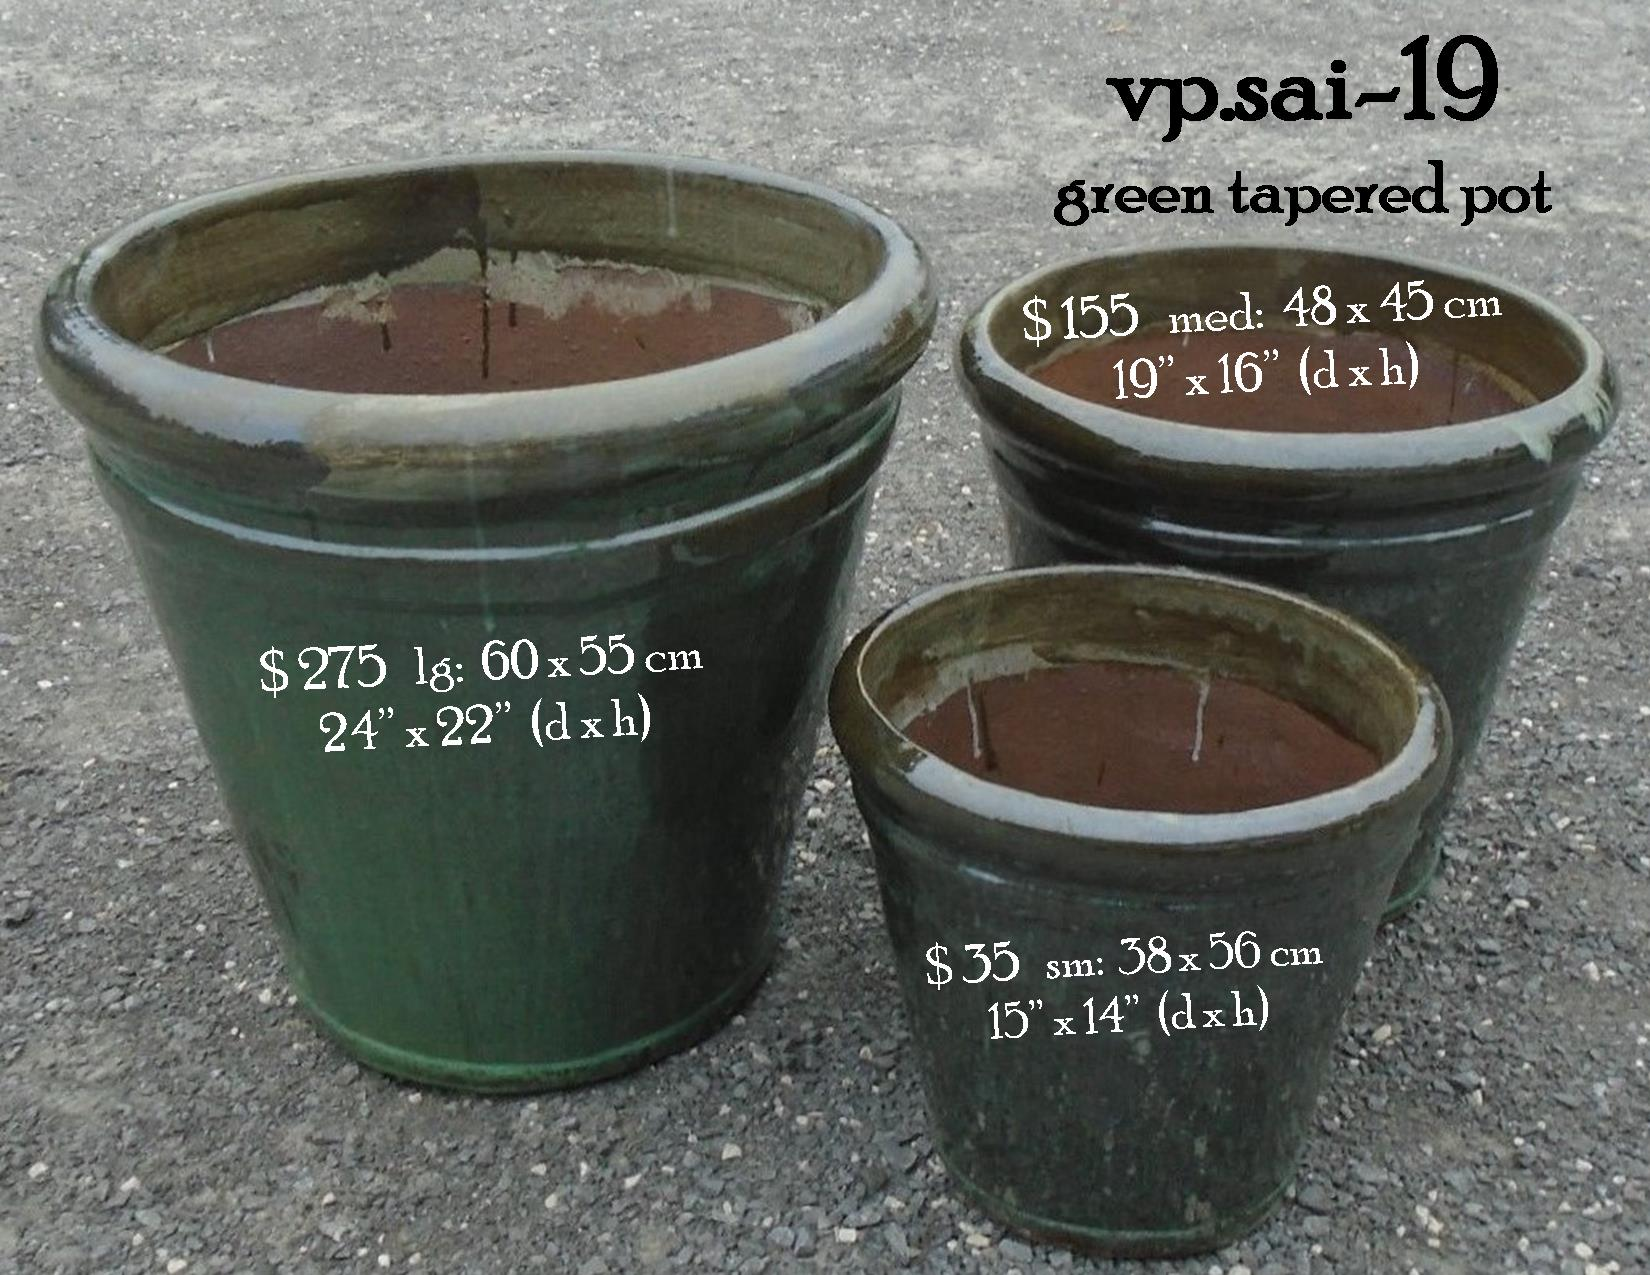 vp.sai-19    green tapered pot